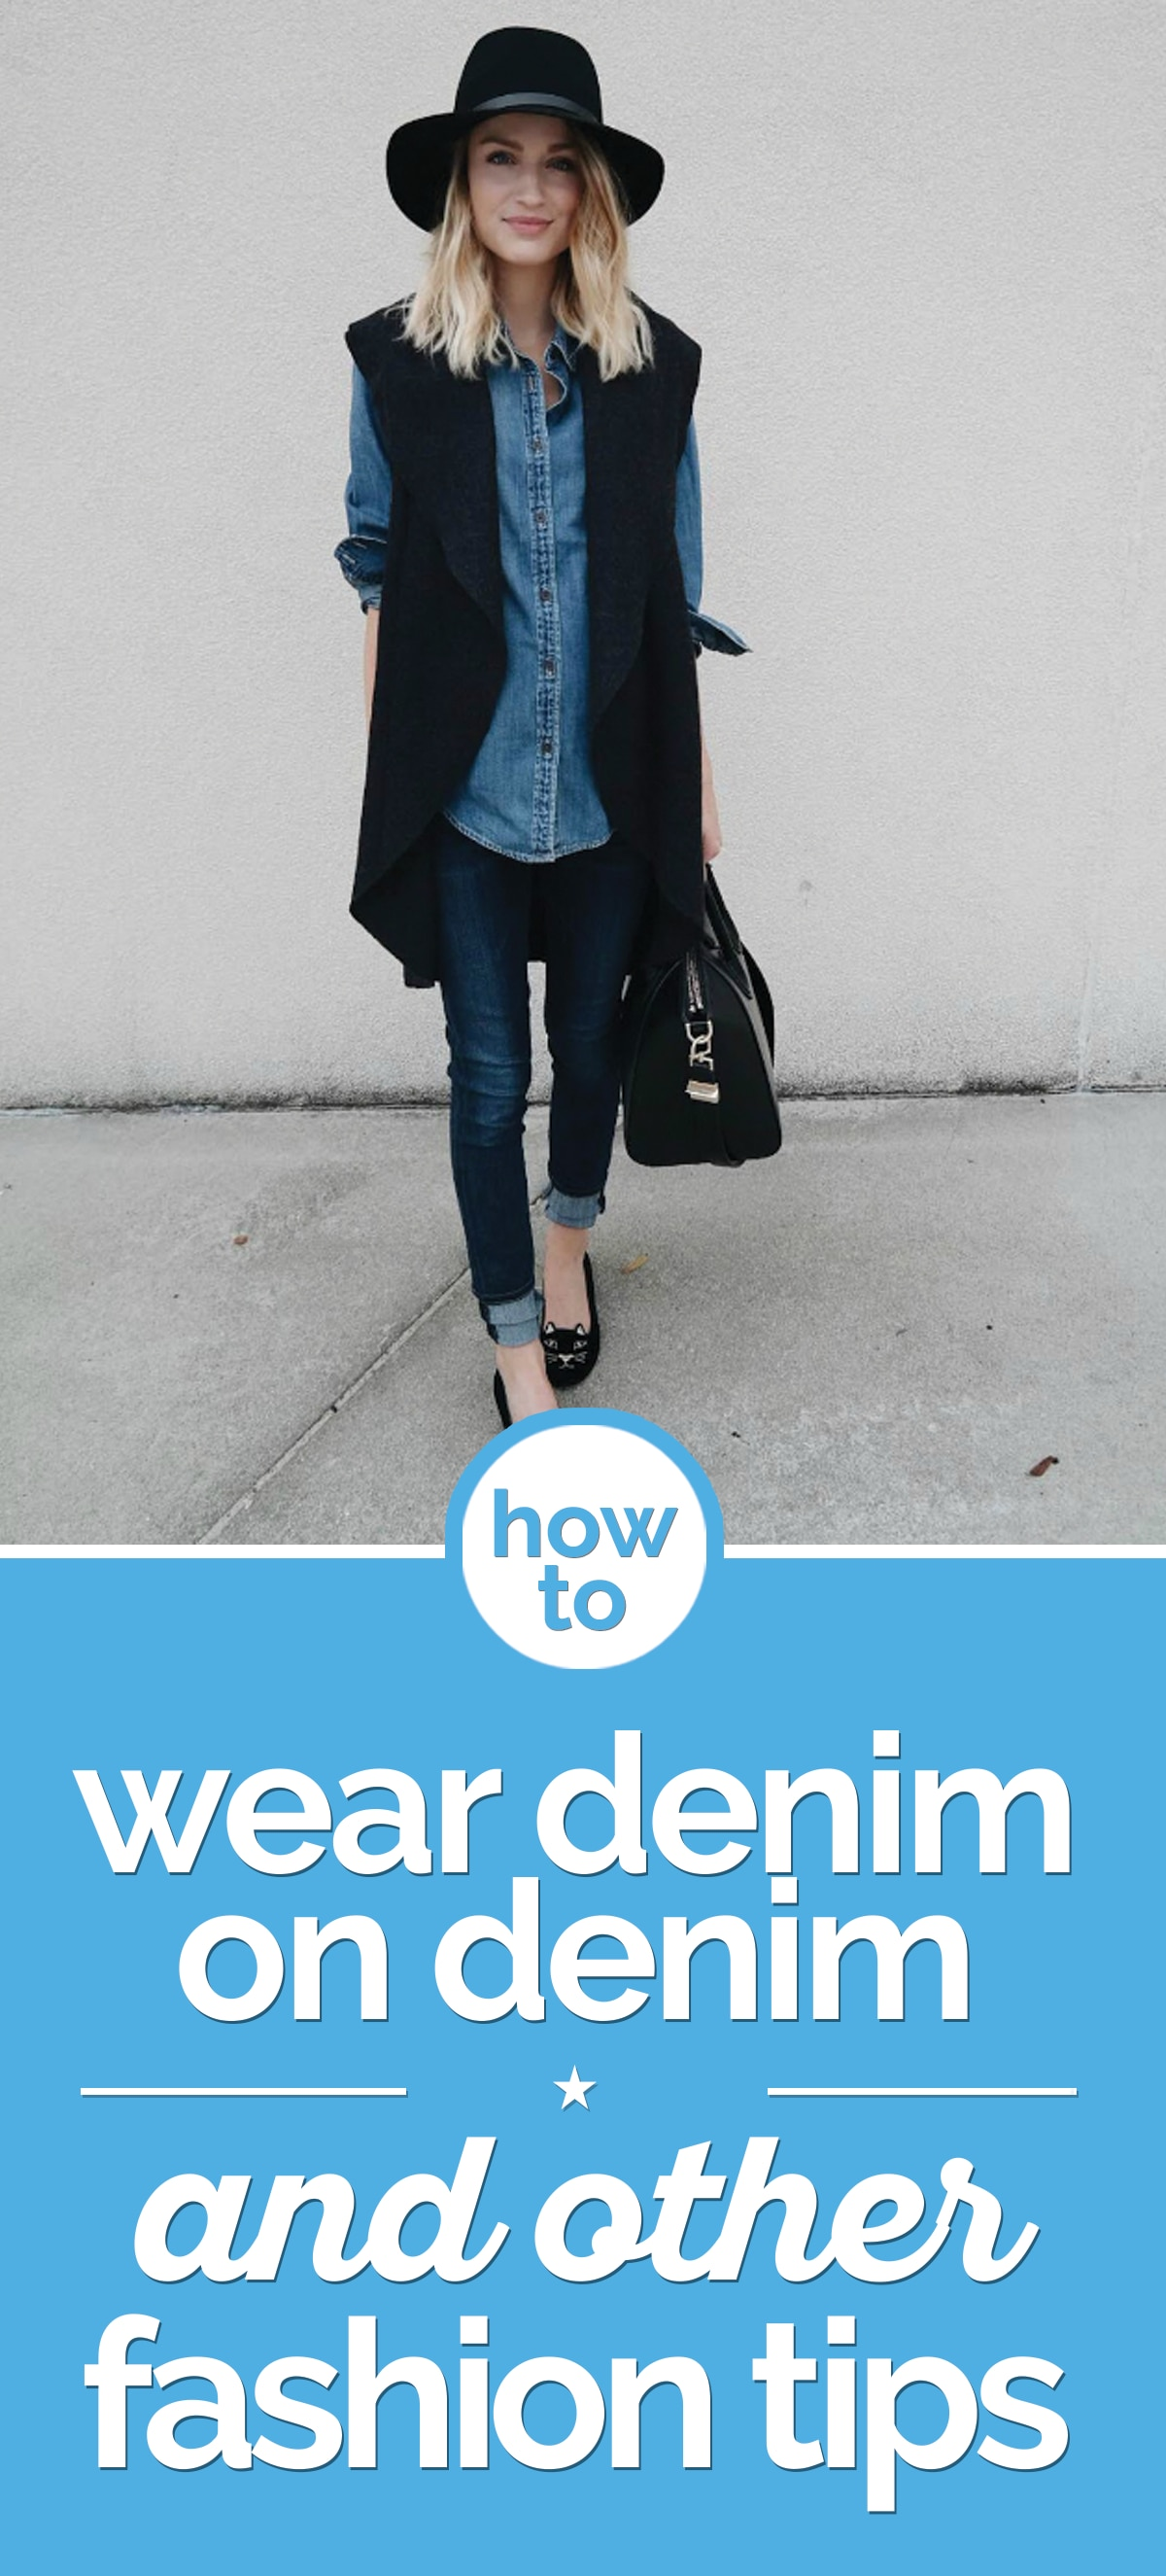 How to Wear Denim on Denim & Other Denim Fashion Tips | the good stuff